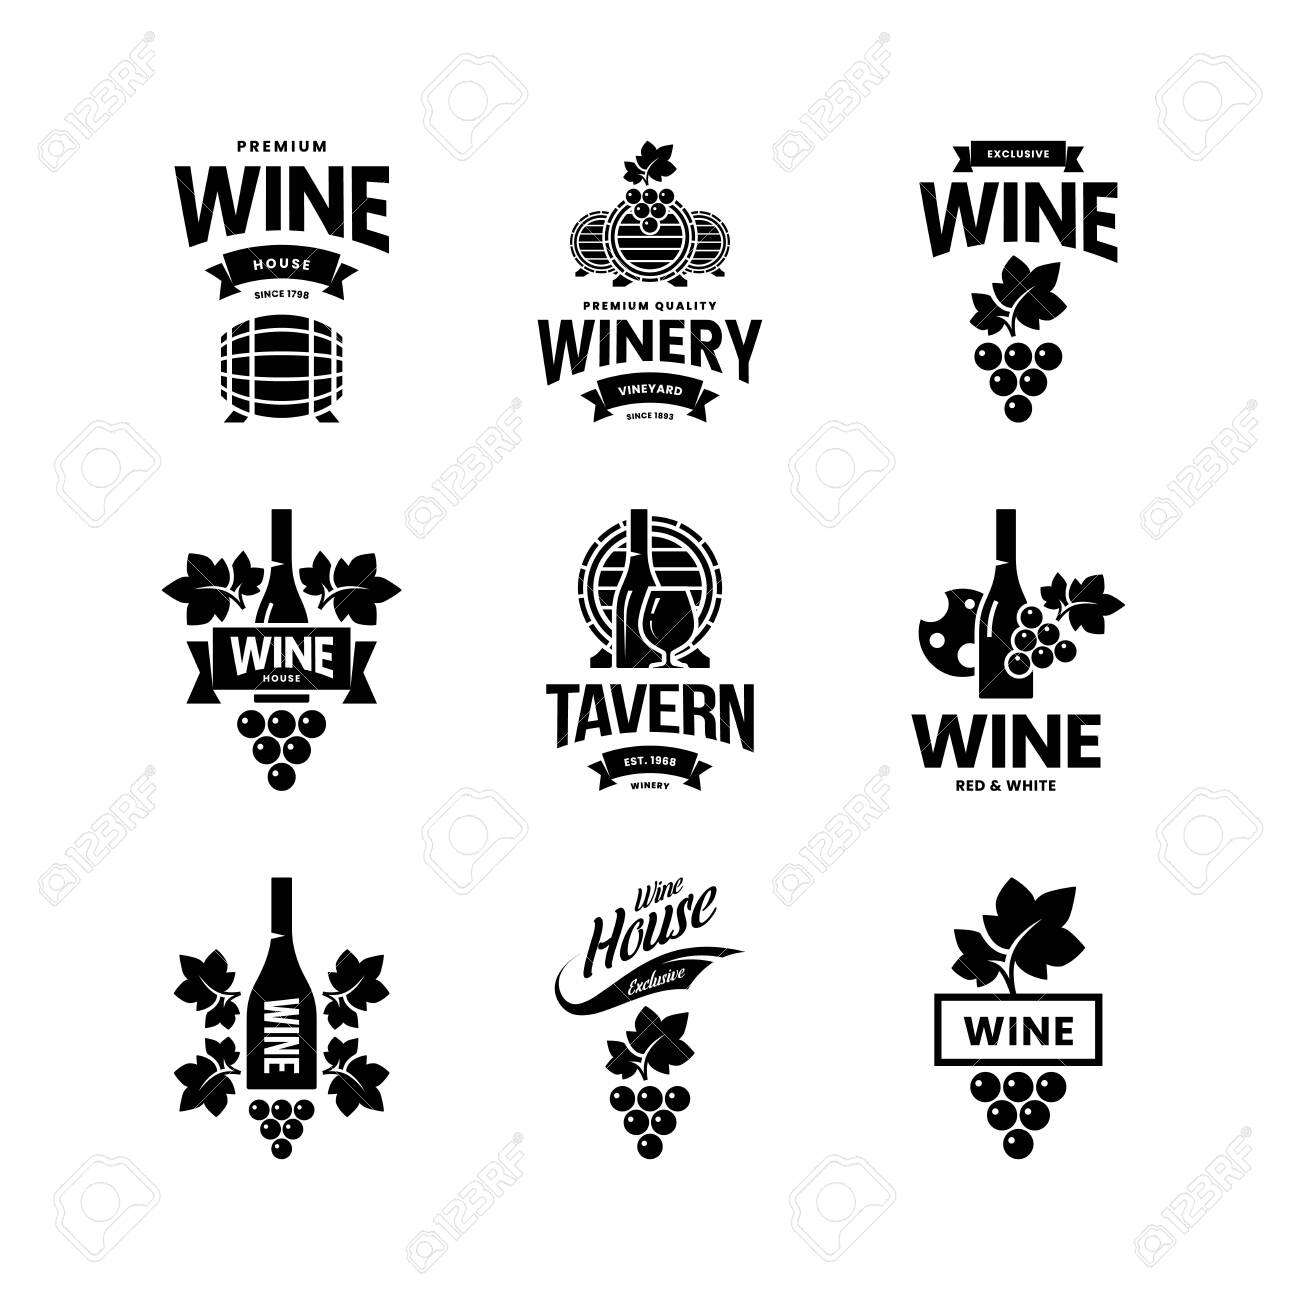 Modern wine vector isolated logo collection for tavern, restaurant, house, shop, store, club and cellar. Premium quality vinery logotype illustration set. Fashion brand badge design template bundle. - 120438821